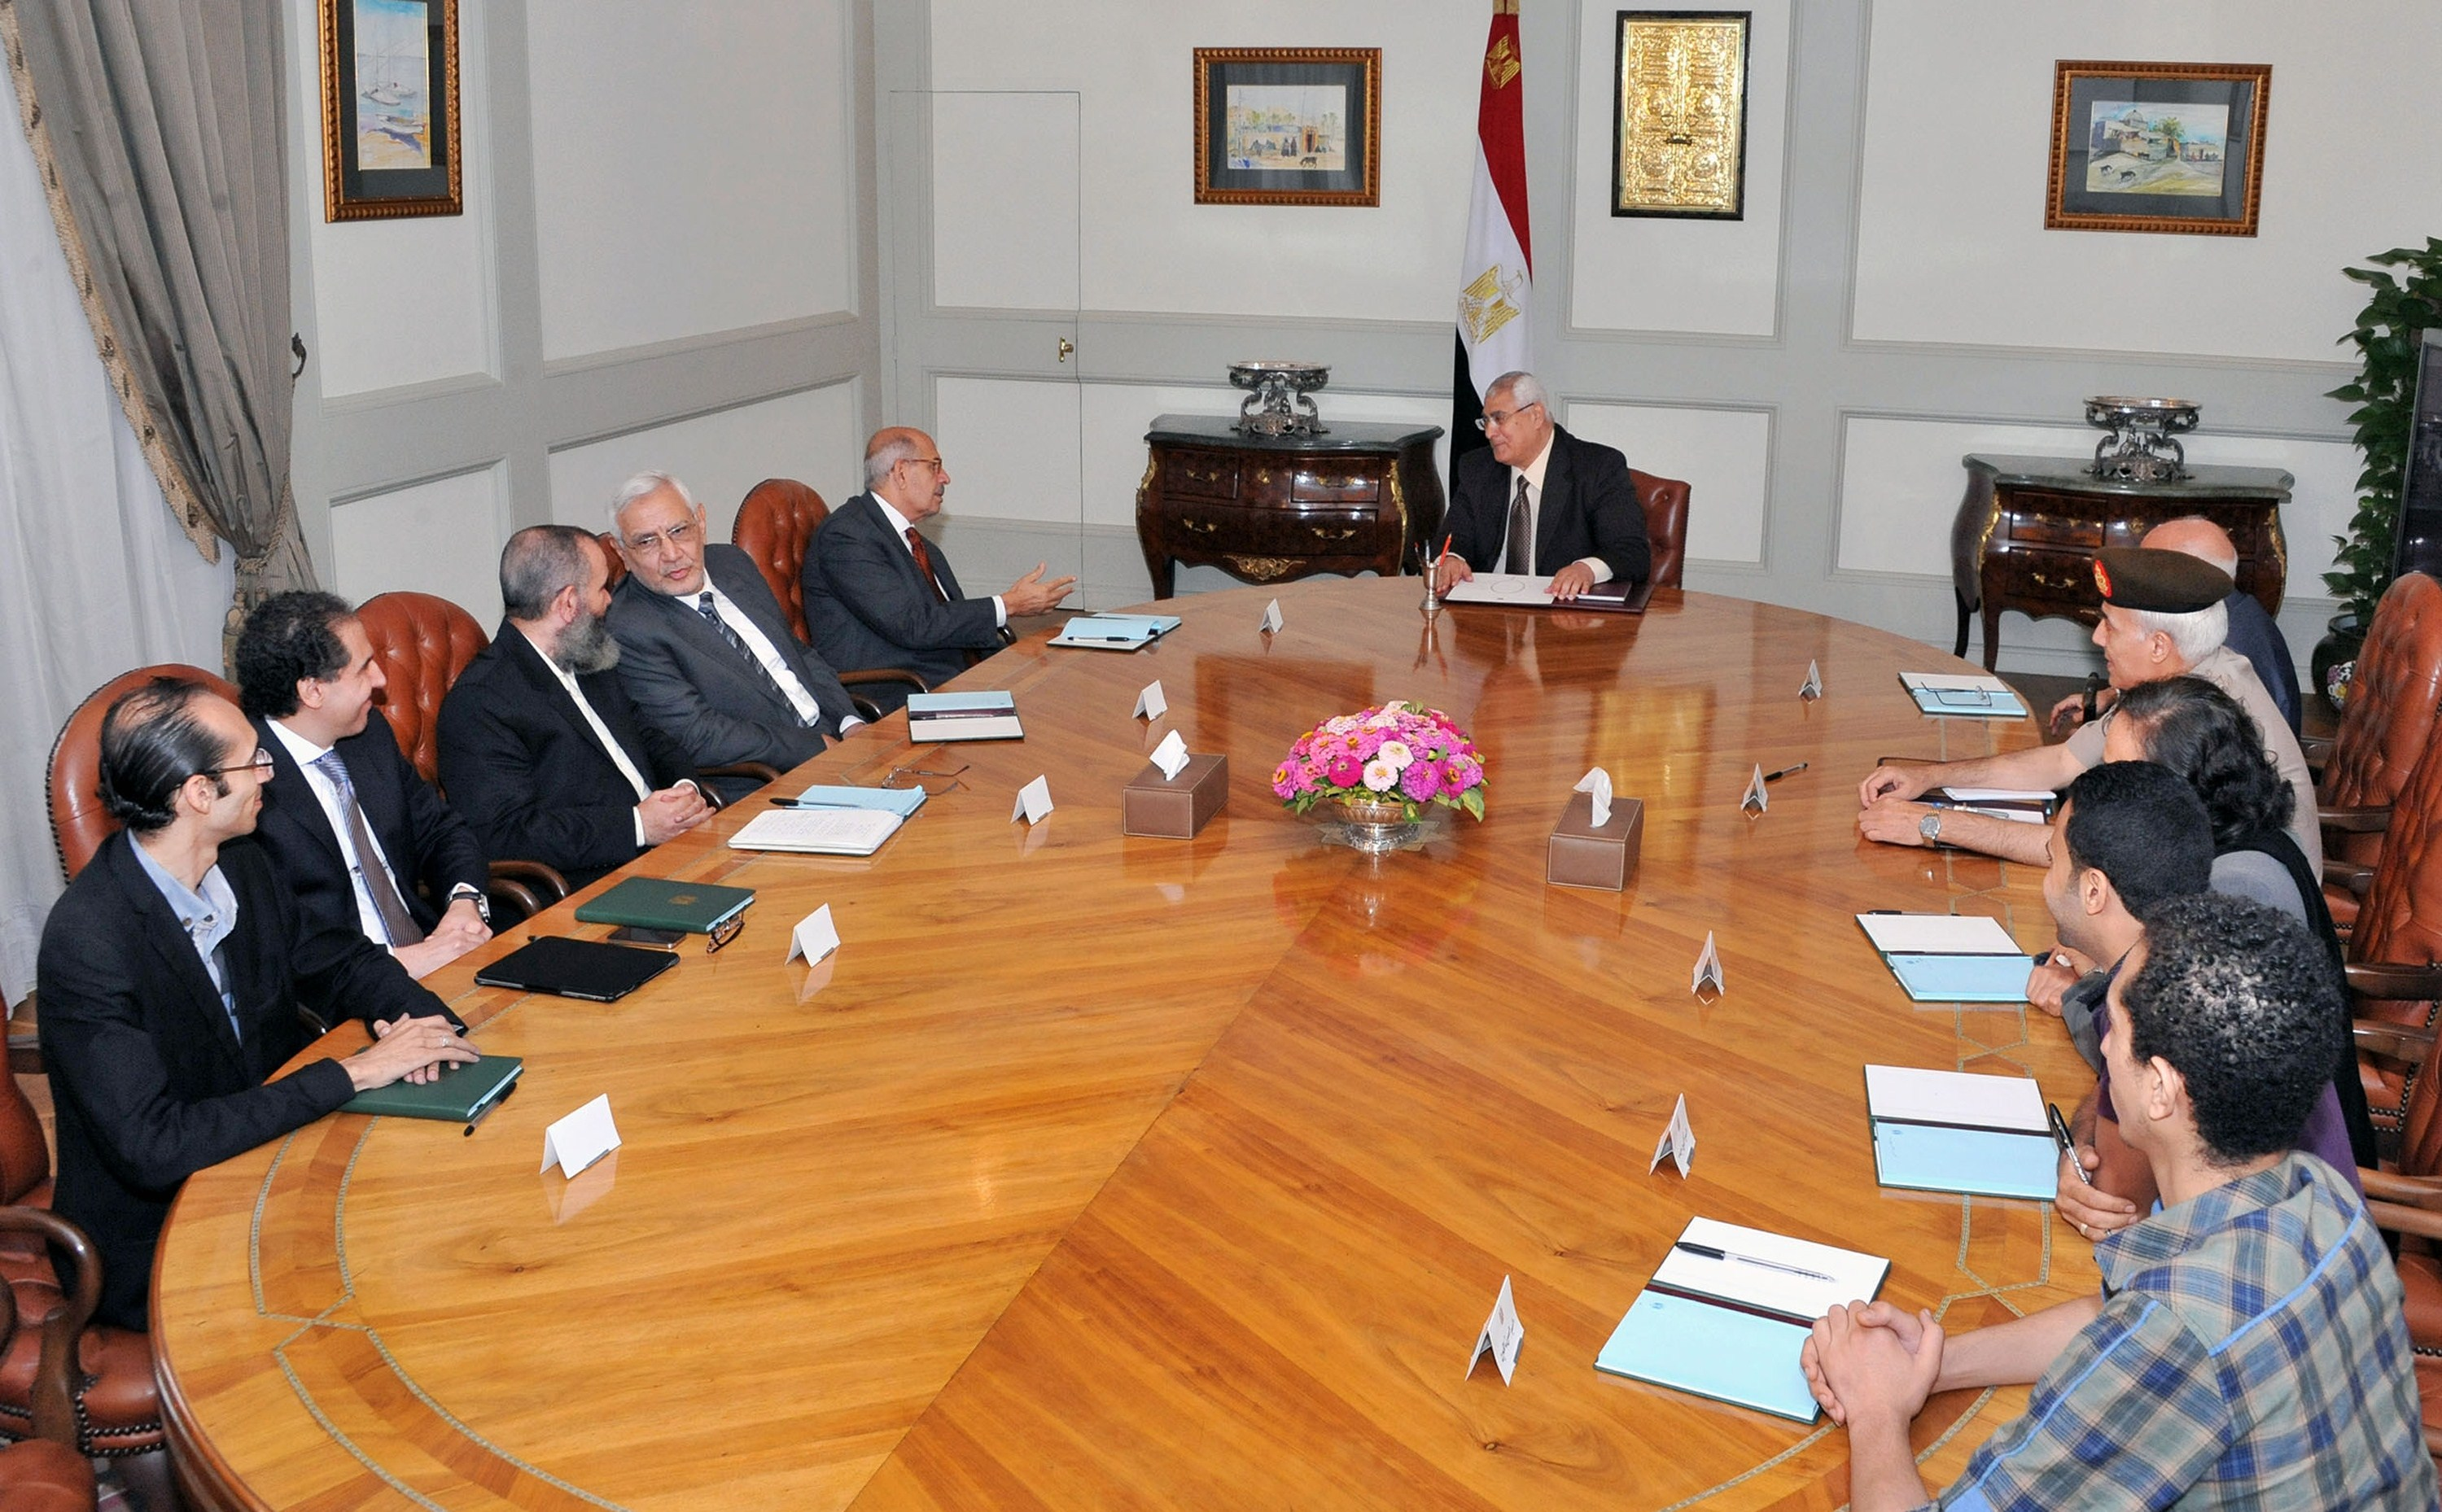 A handout picture released by the Egyptian Presidency shows Egypt's interim president Adly Mansour (C) meeting with opposition National Salvation Front leader Mohamed El Baradei (5thL) and heads of opposition Tamarod (Rebellion) group and other opposition leaders on July 6, 2013 in Cairo.  (AFP Photo)